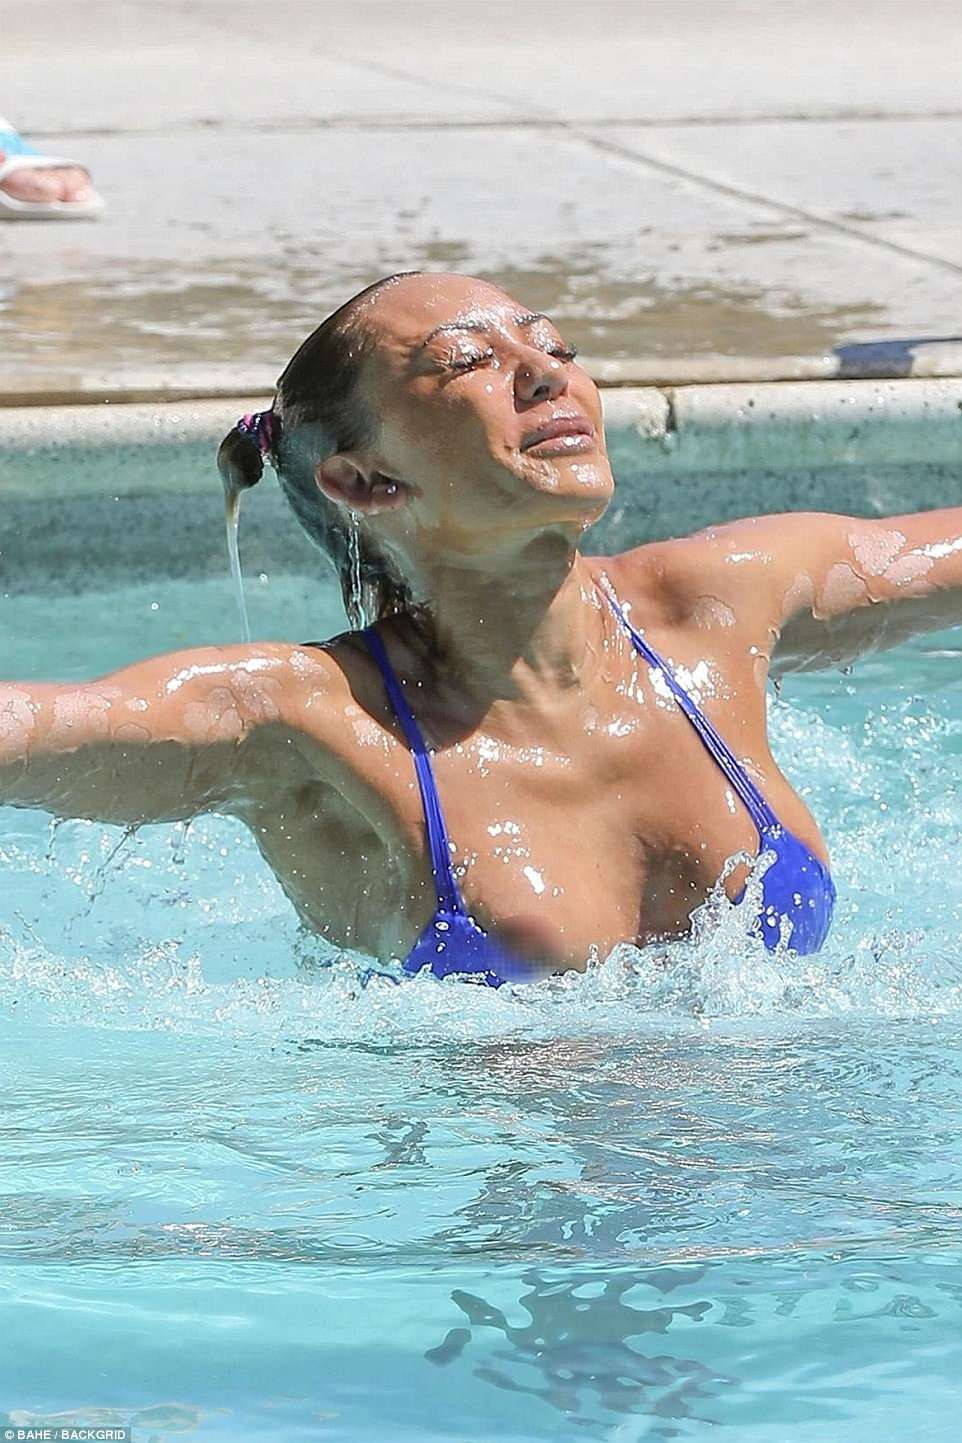 Oops! The Spice Girls star, 42, flashed a little too much as she spilled out her bikini top while taking a refreshing dip in a pool